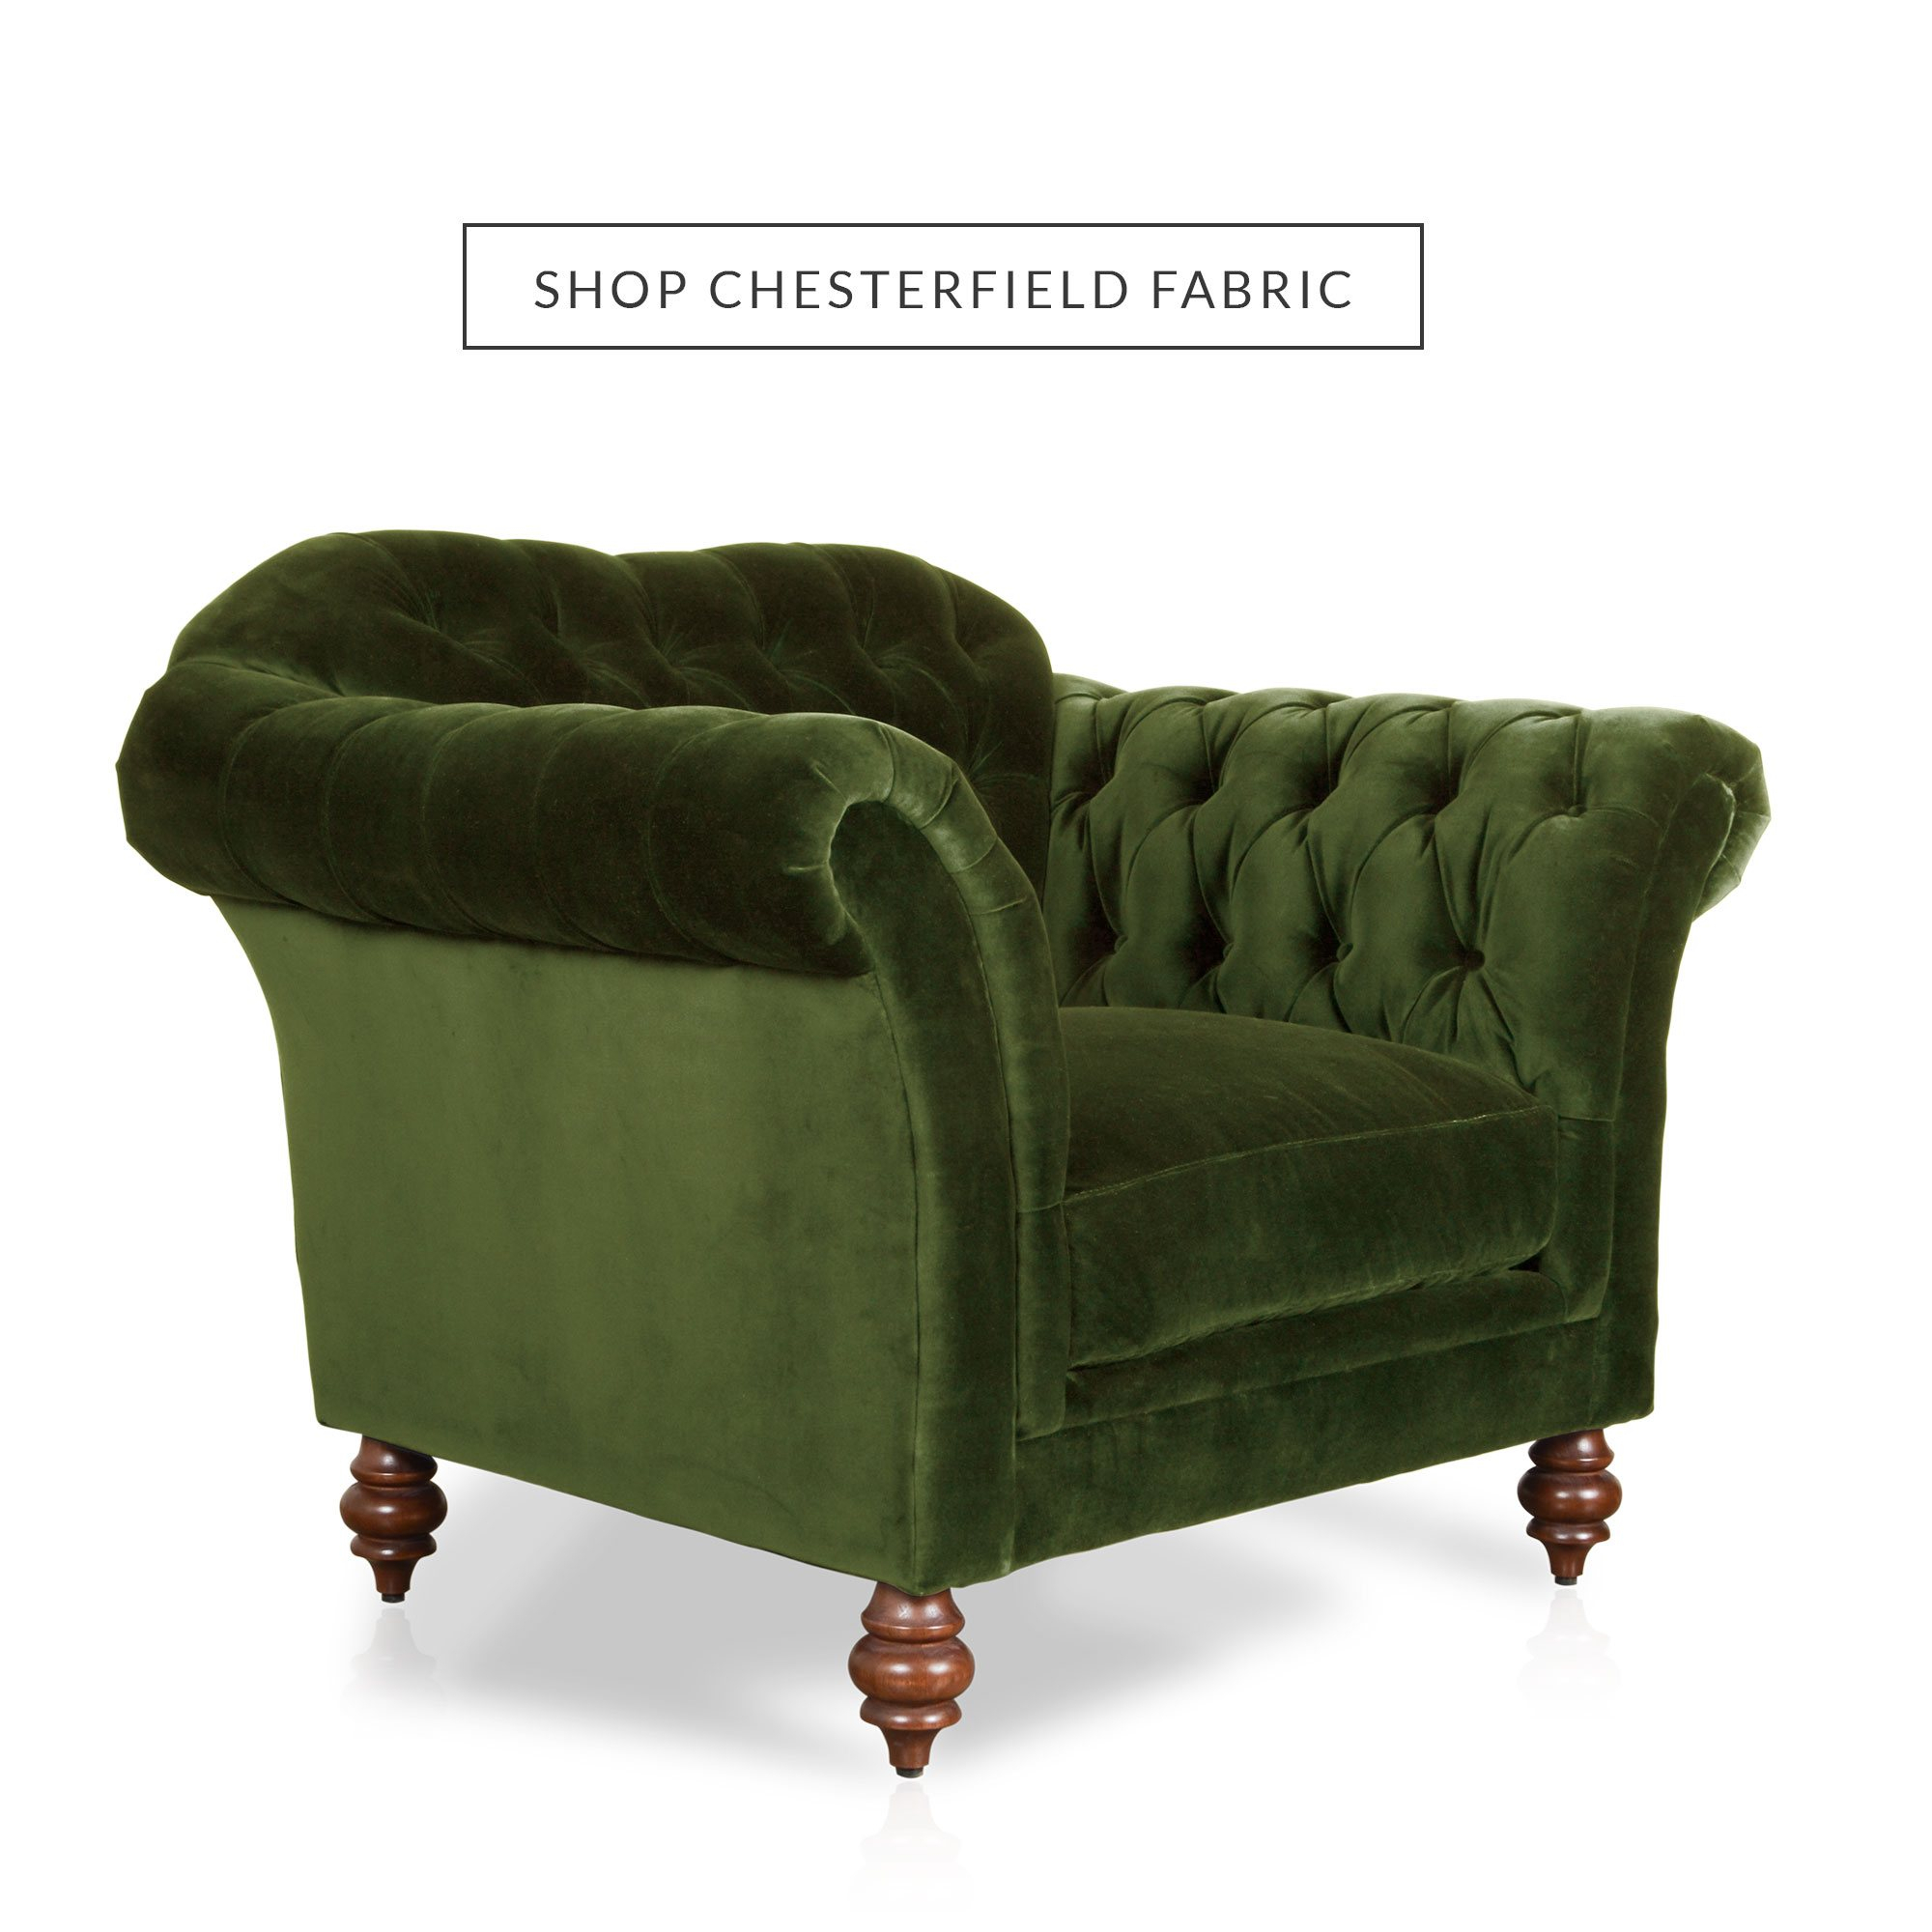 Chesterfield Sofas, Modern Furniture Made In Usa | Cococohome Intended For Gina Blue Leather Sofa Chairs (Image 4 of 25)